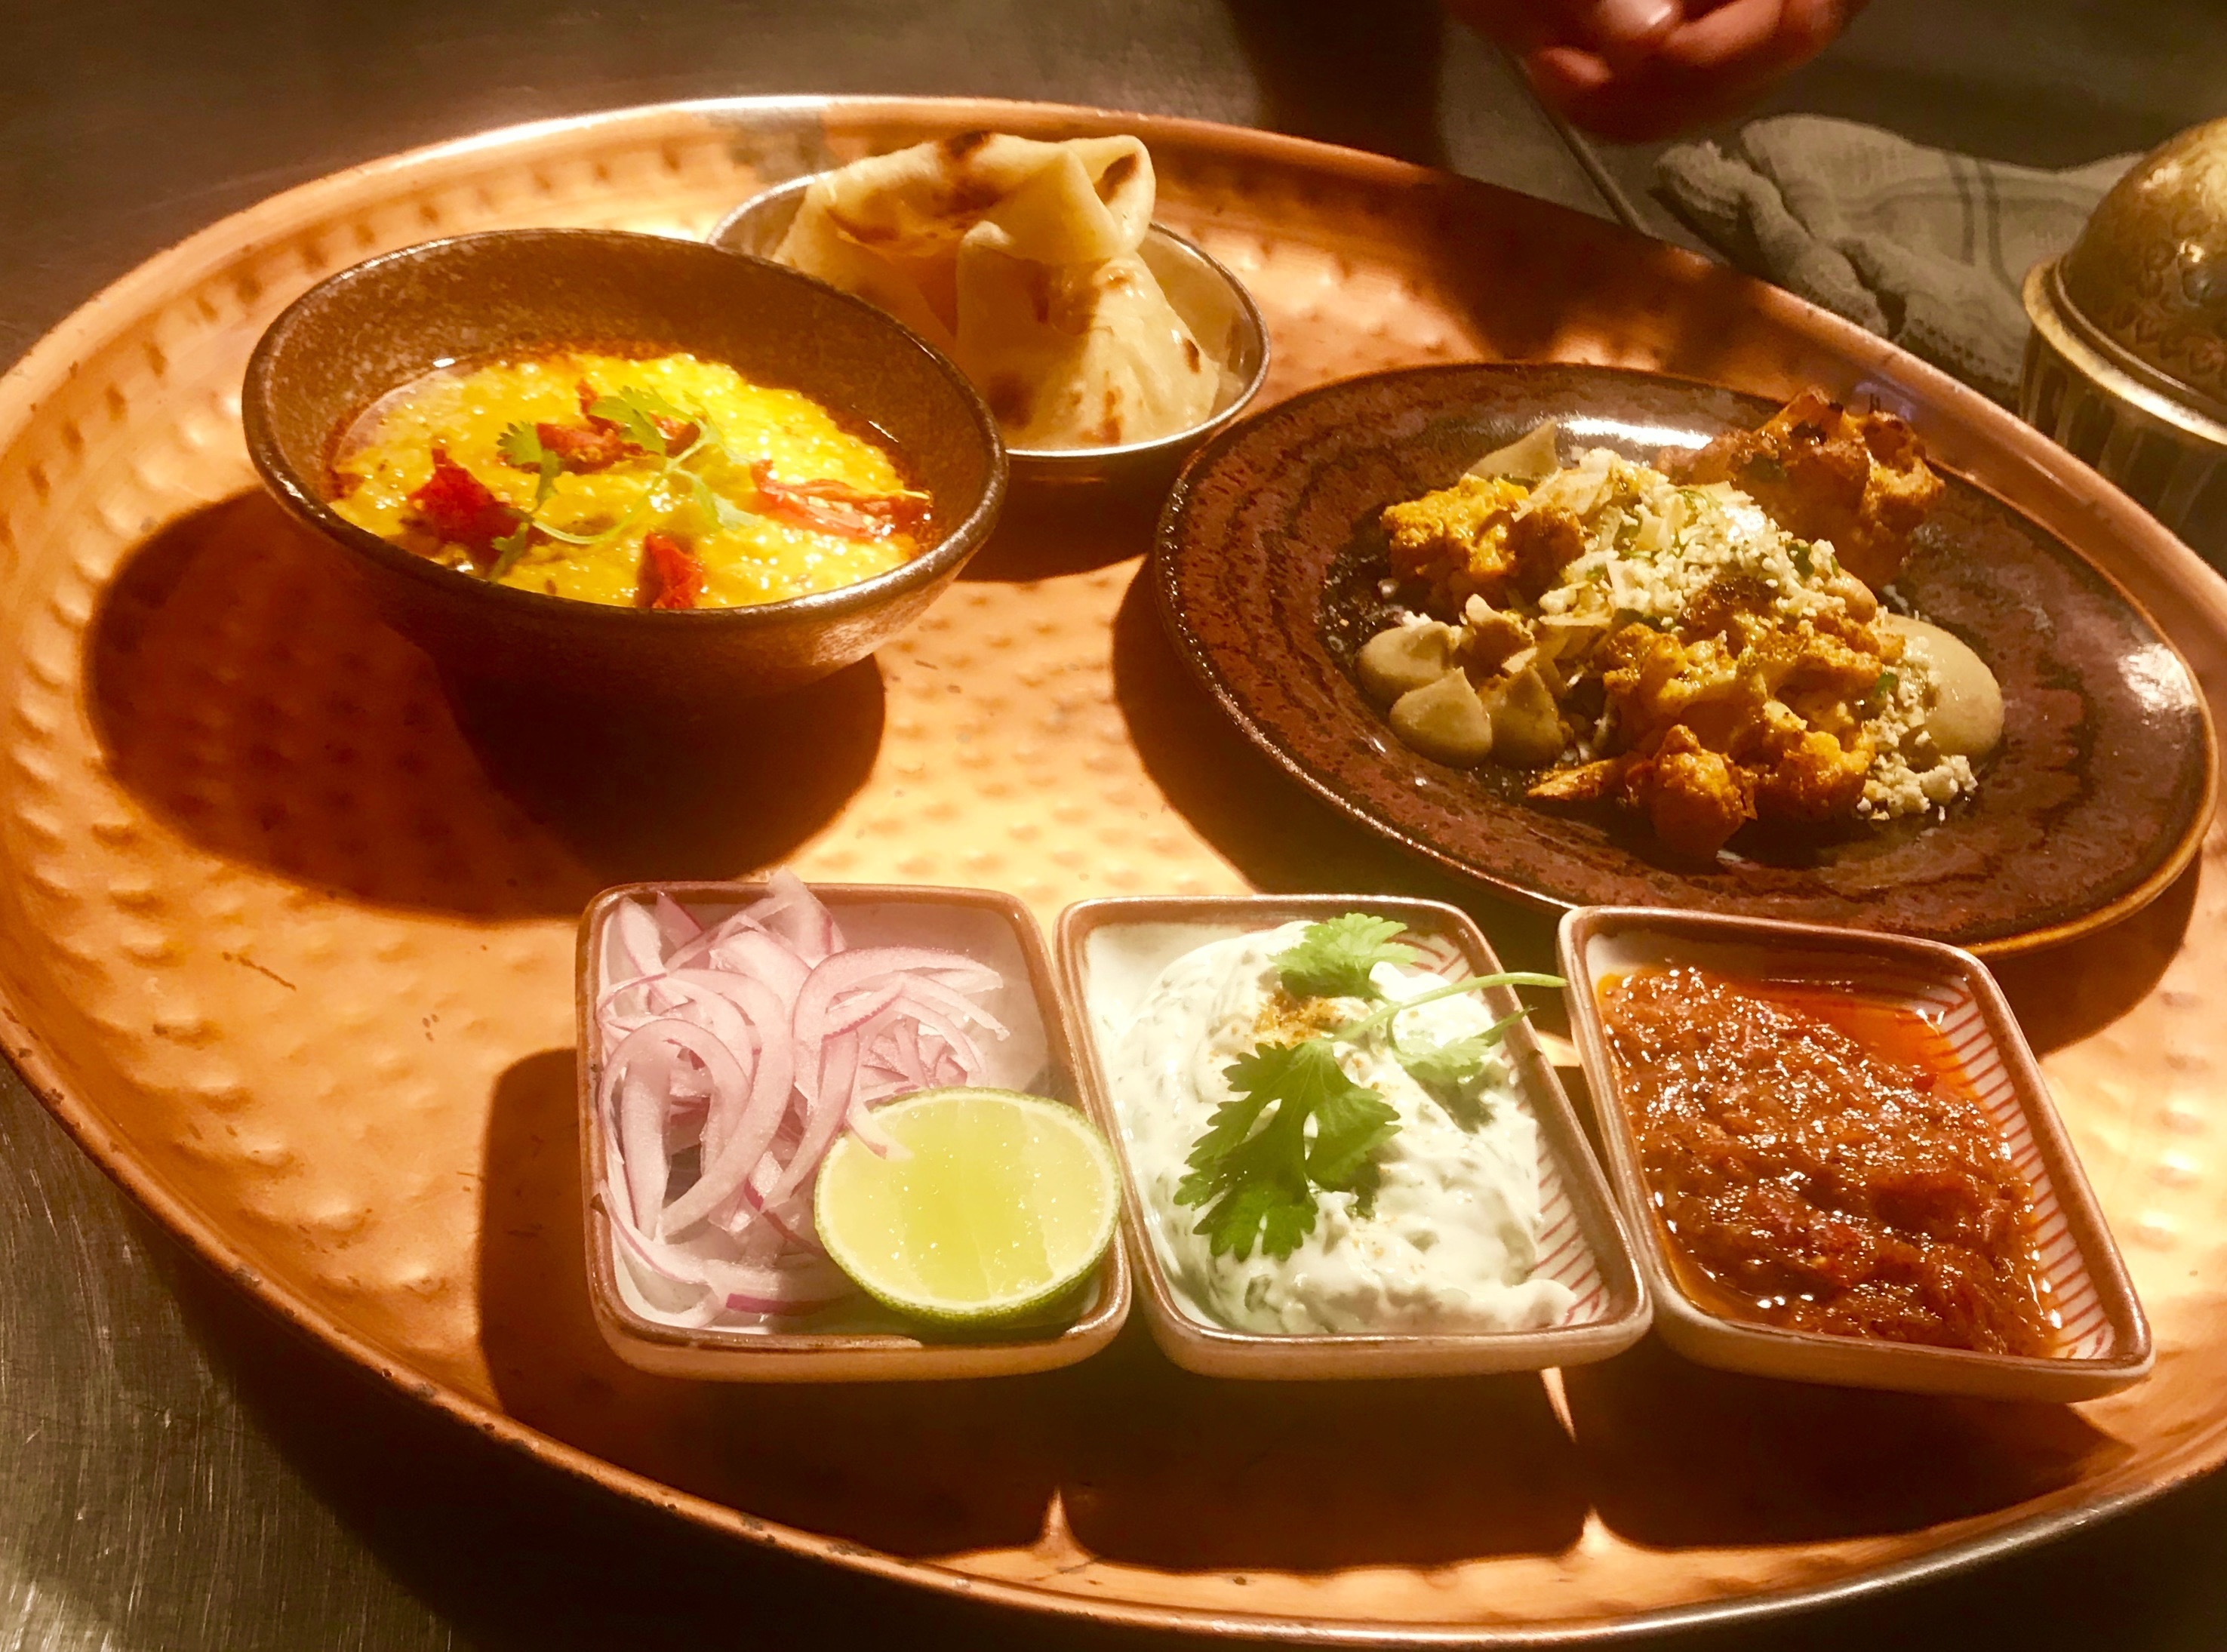 Tasty Indian cuisine tapas-style at Thali